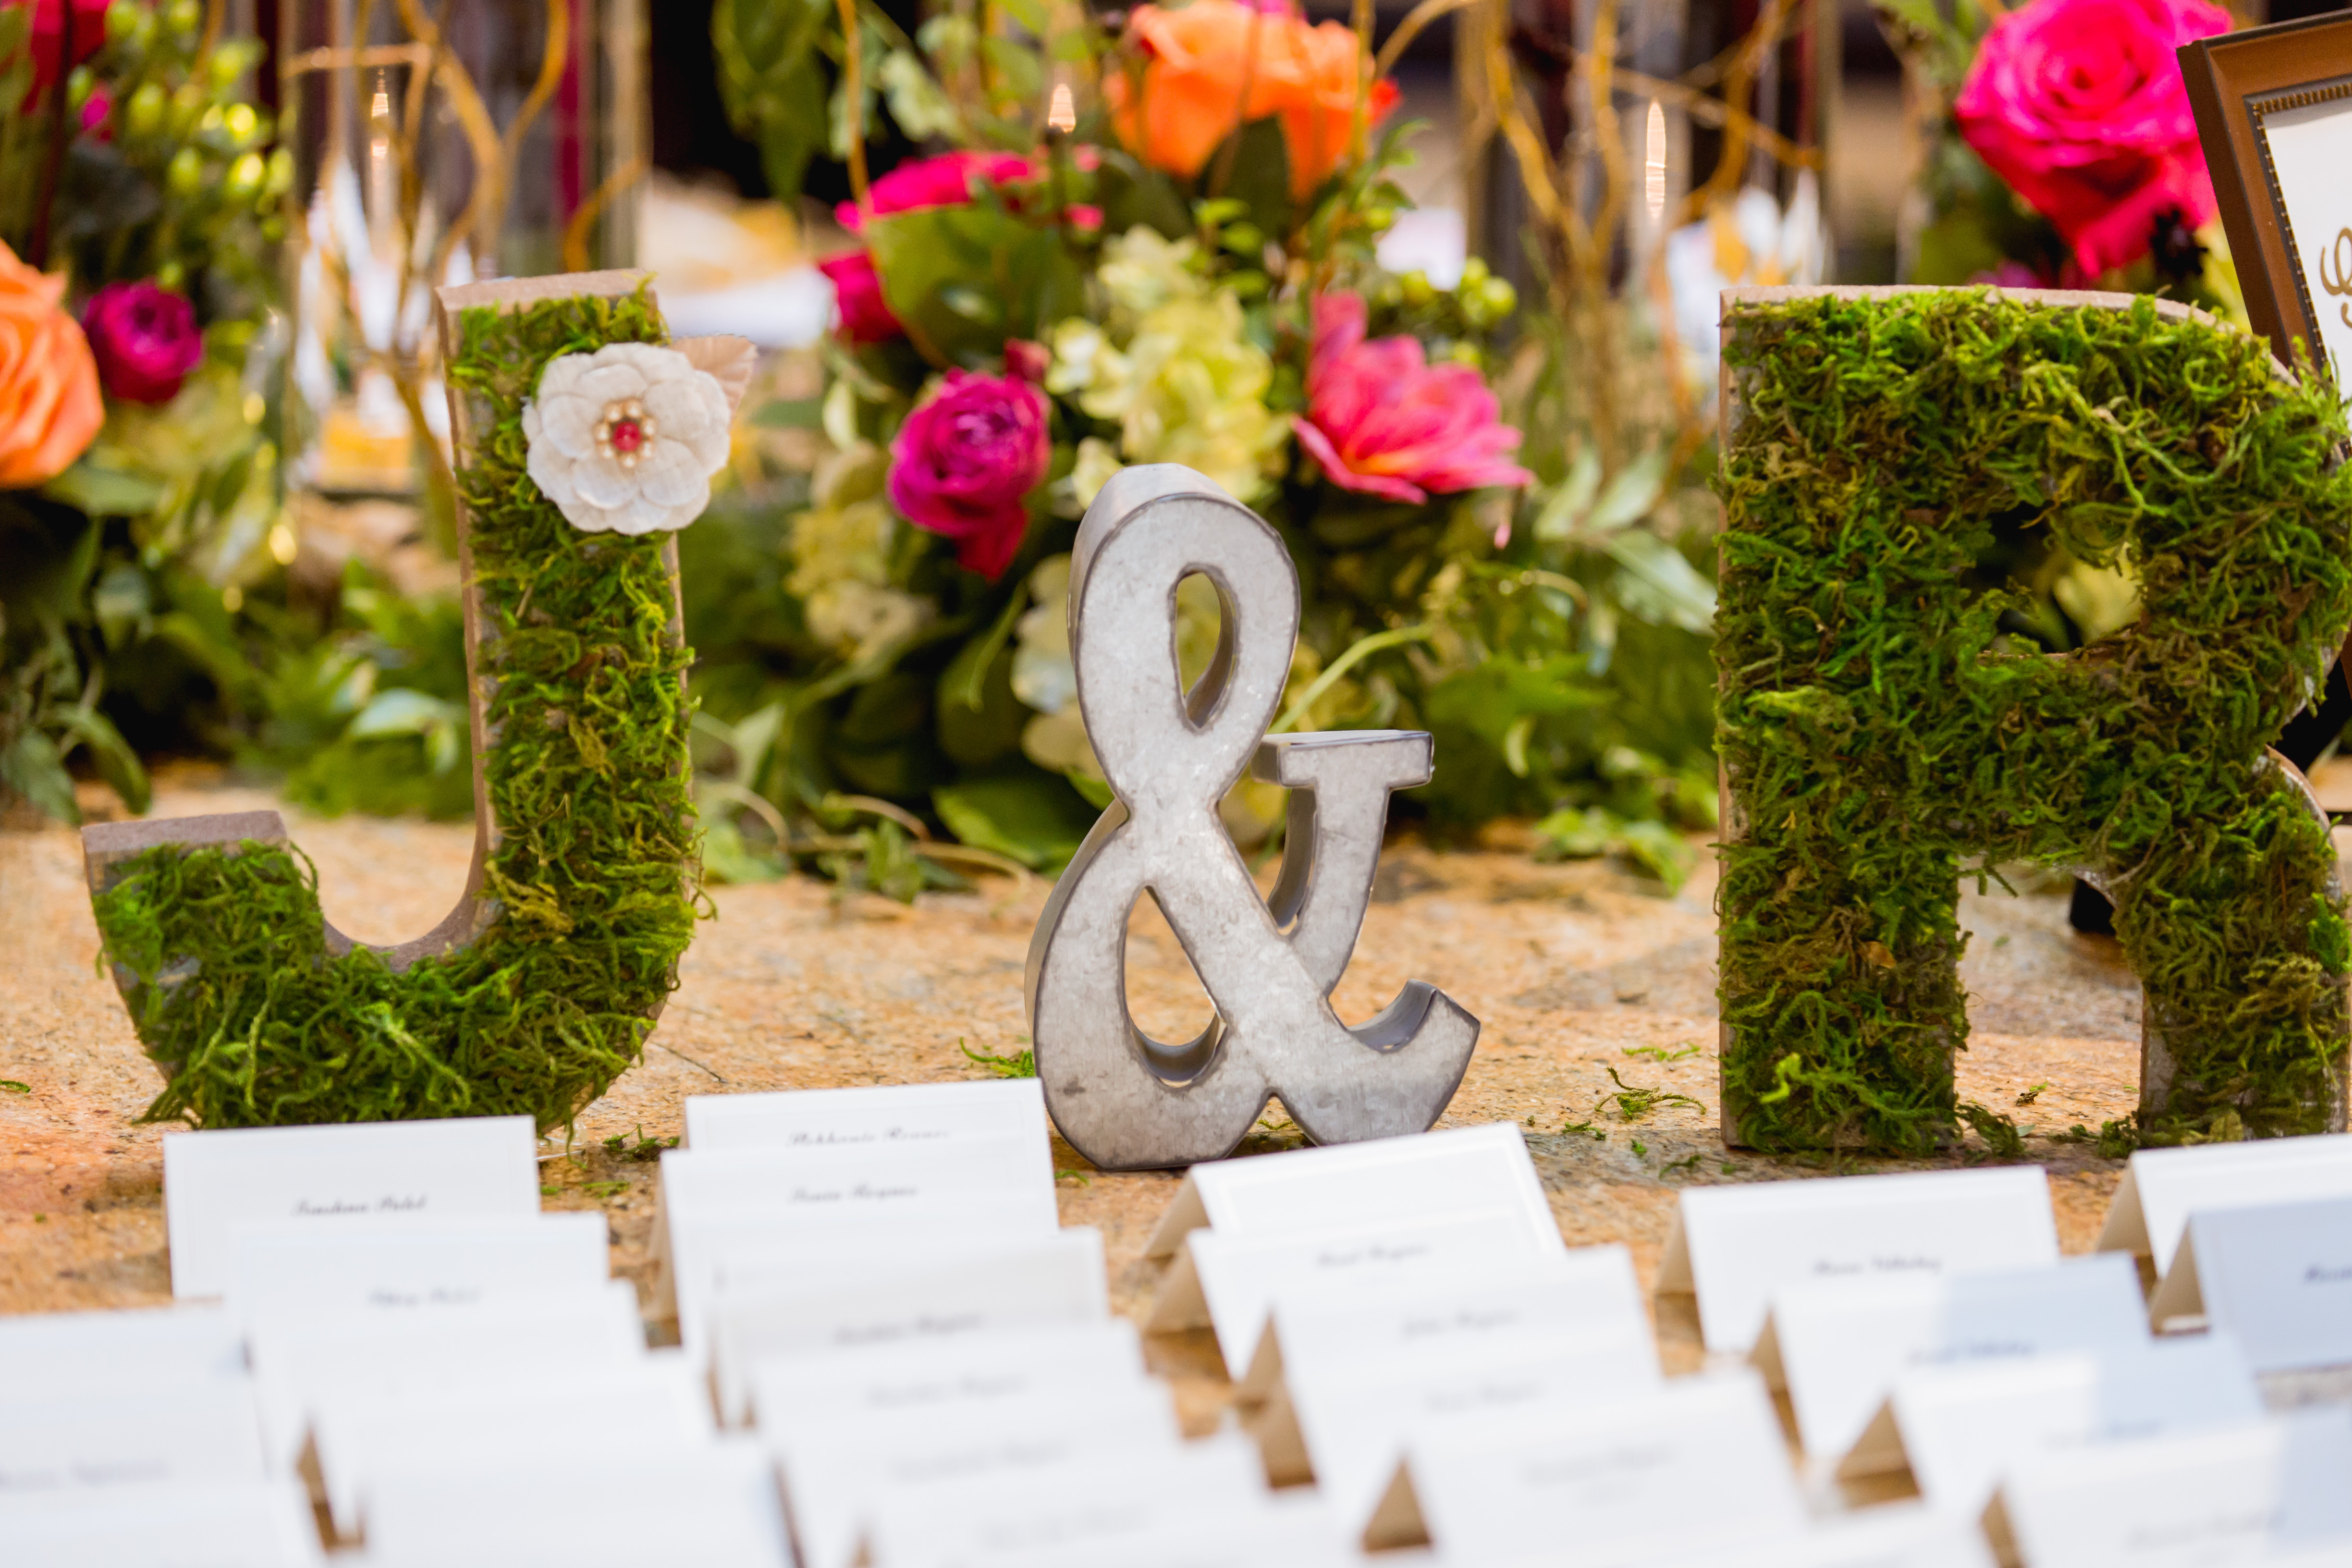 Rustic greenery inspiration for your escort card table! Create a display using your initials made completely from greenery like we did here.